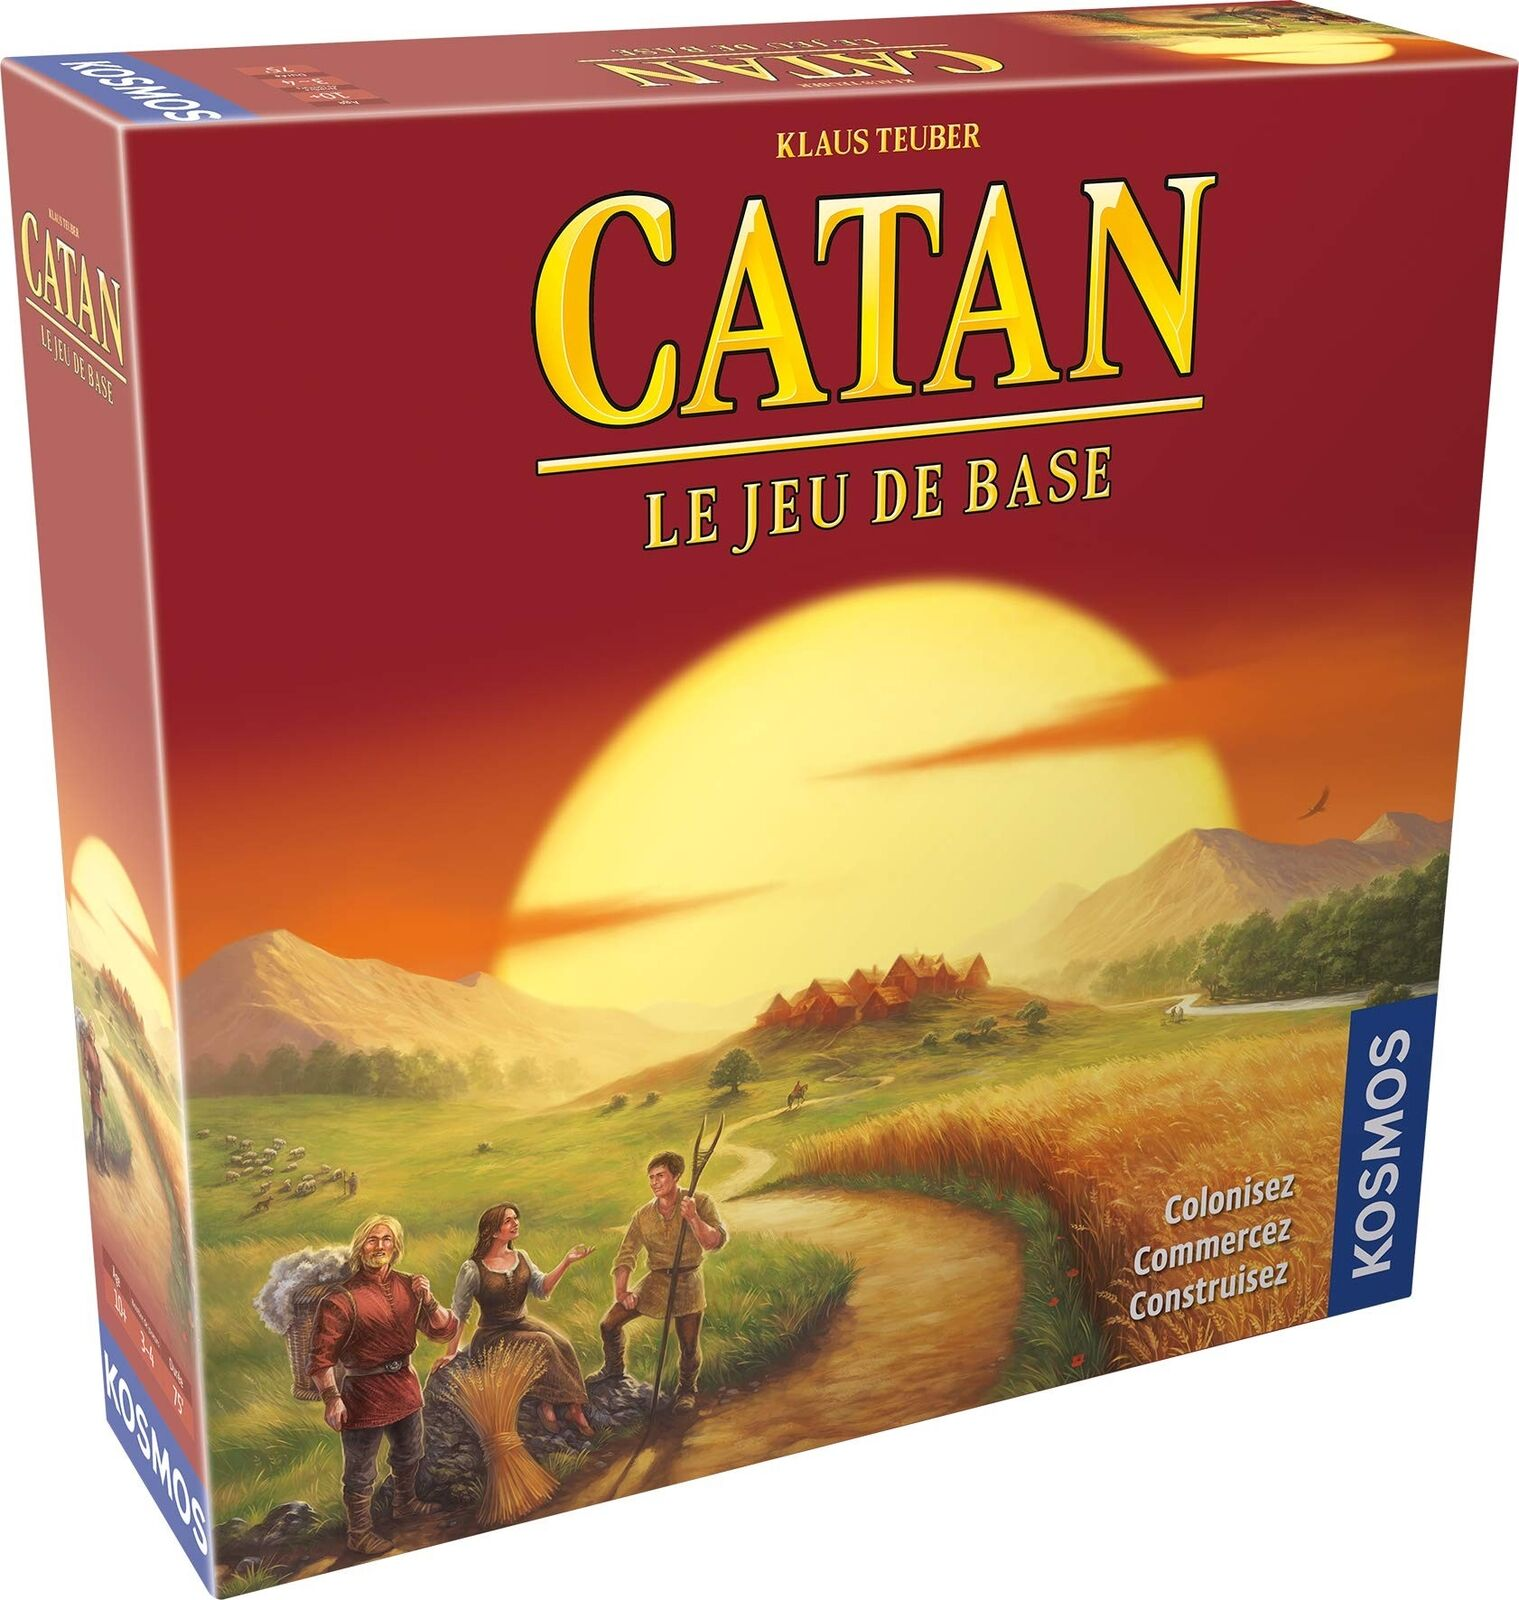 Asmodee – Society – Catan – The Basic Set, ficat01, N A